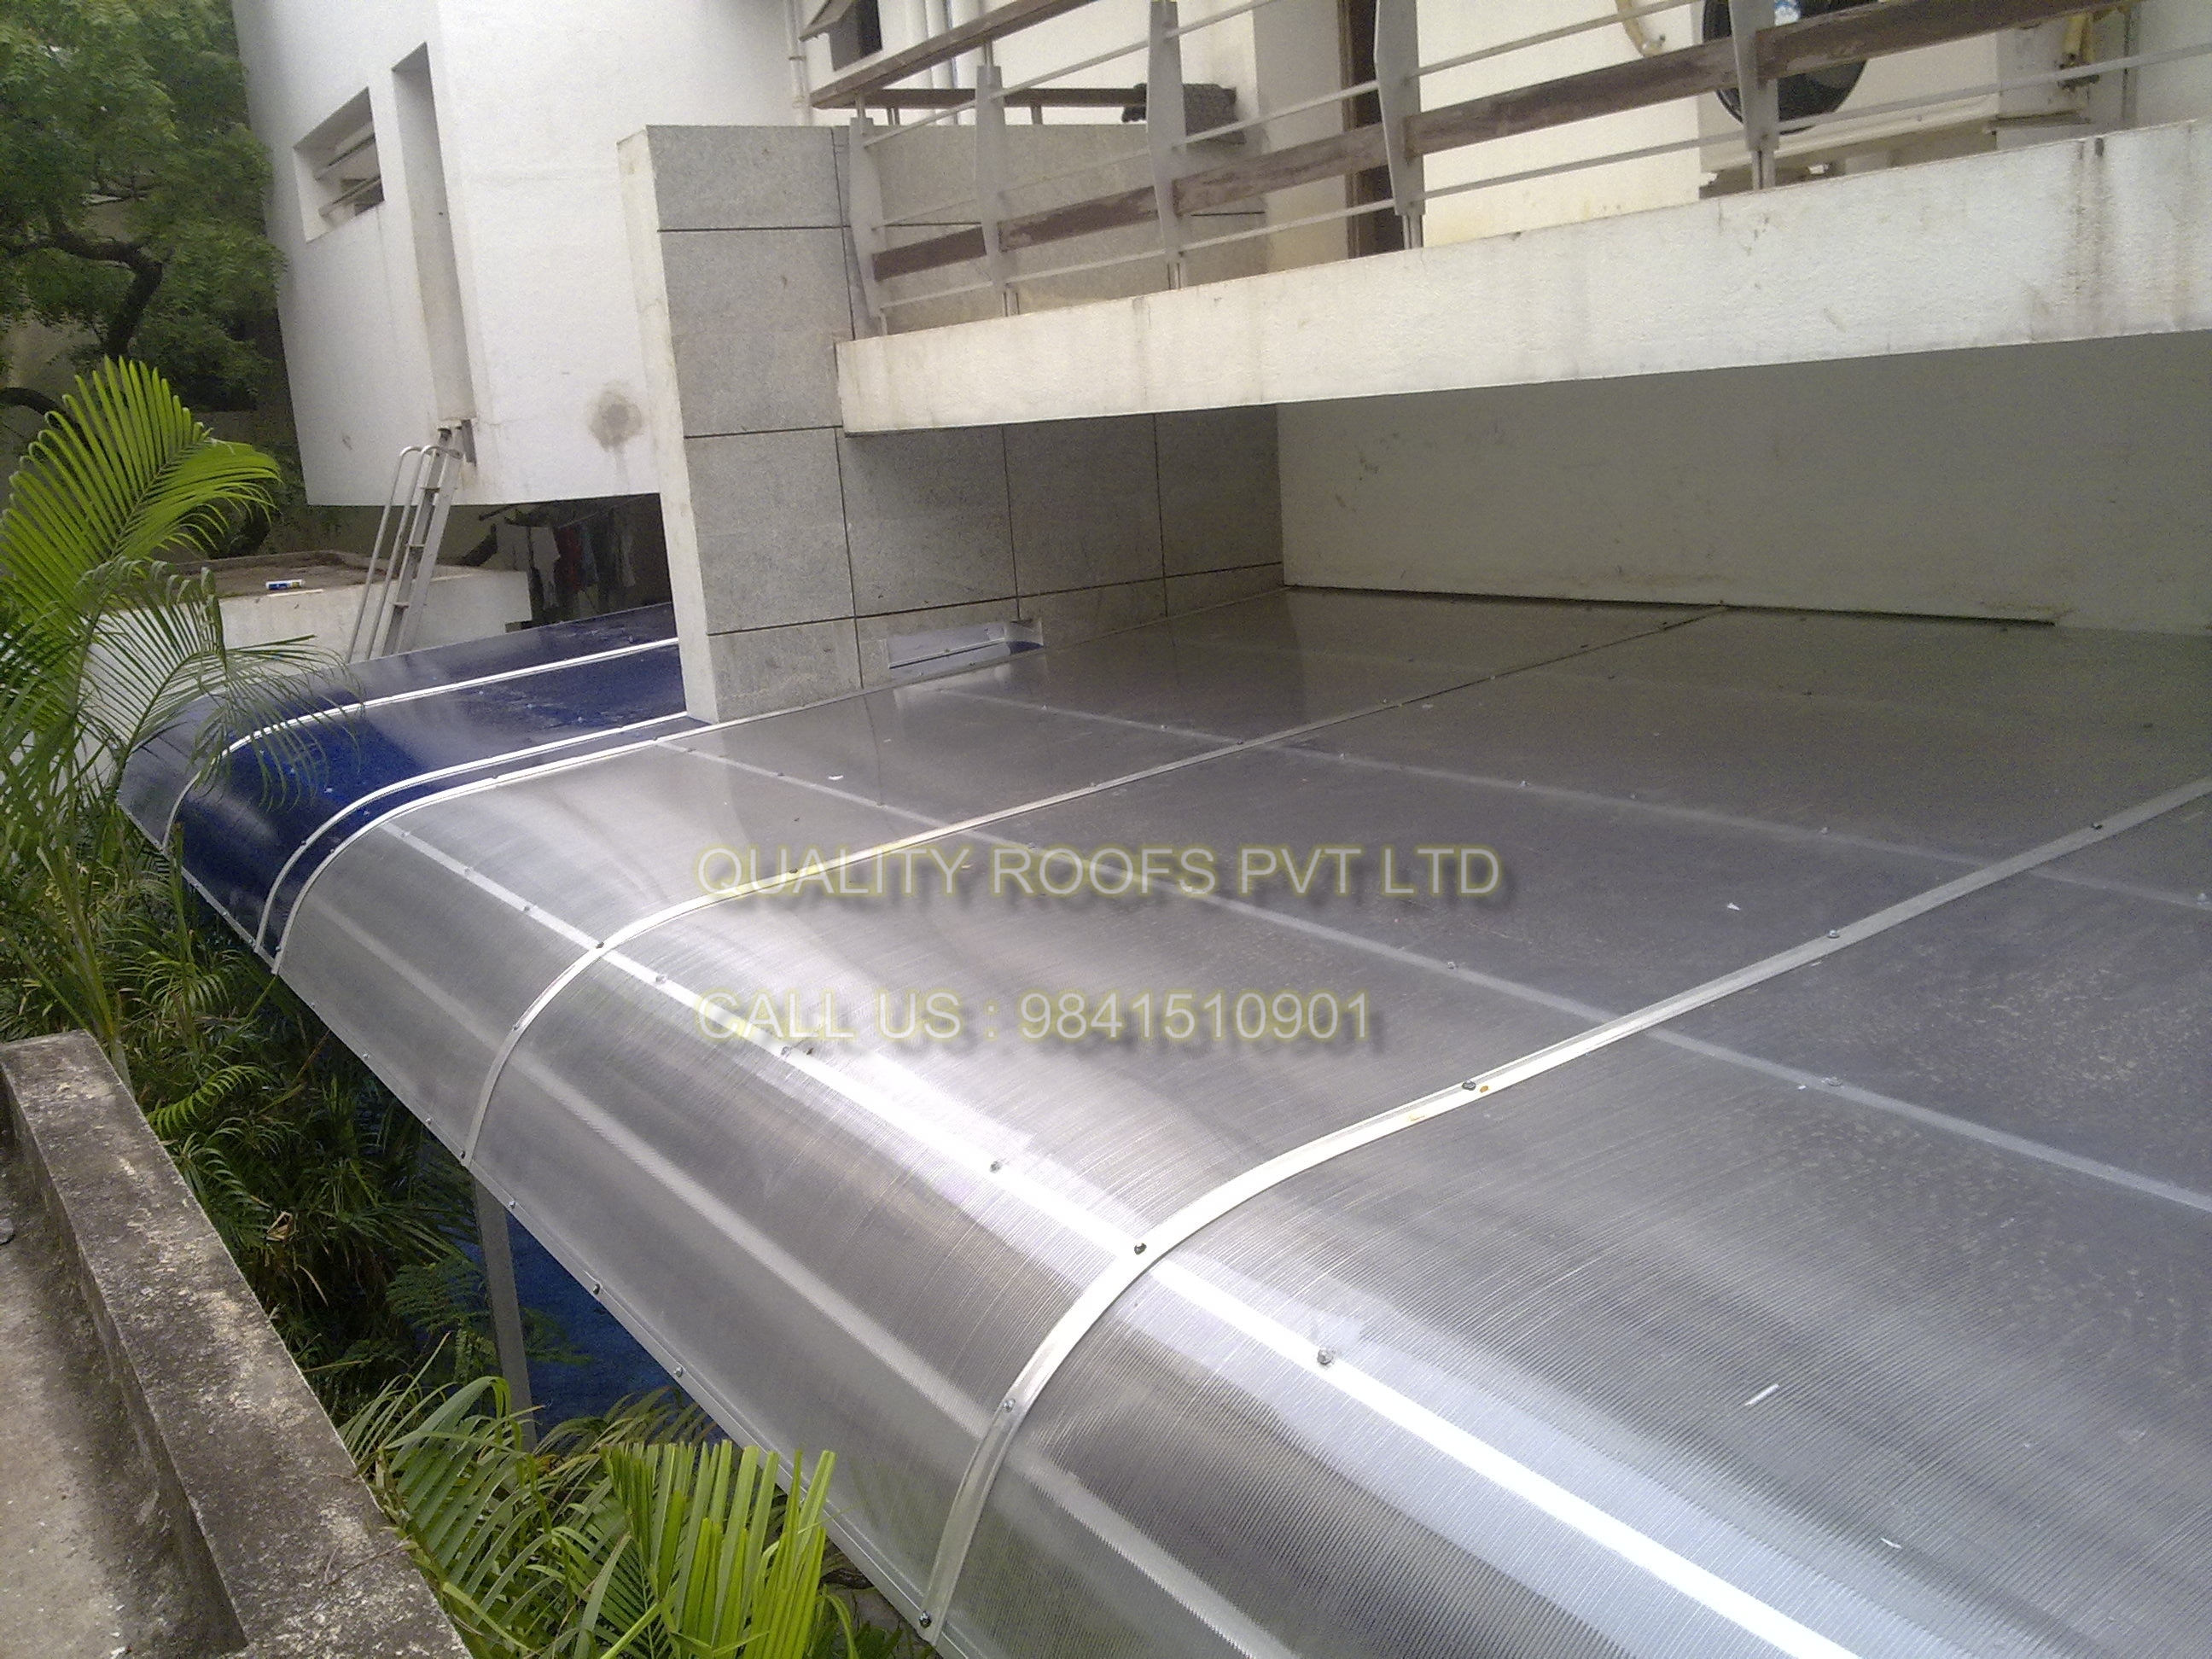 Polycarbonate Roofing Contractors     We are the leading Polycarbonate Roofing Contractors.  We offer them Polycarbonates Roofing. It is recognized as a versatile roofing material that provides high weather resistance along with rendering excellent fire and heat performance. Virtually unbreakable, it gives adequate light transmission which is why it is in high demand among our clients. We also offer swimming pool polycarbonate roofing structures that provide immense comfort to the users. We are the best Roofing Shed. We are offered Roofing Sheet.